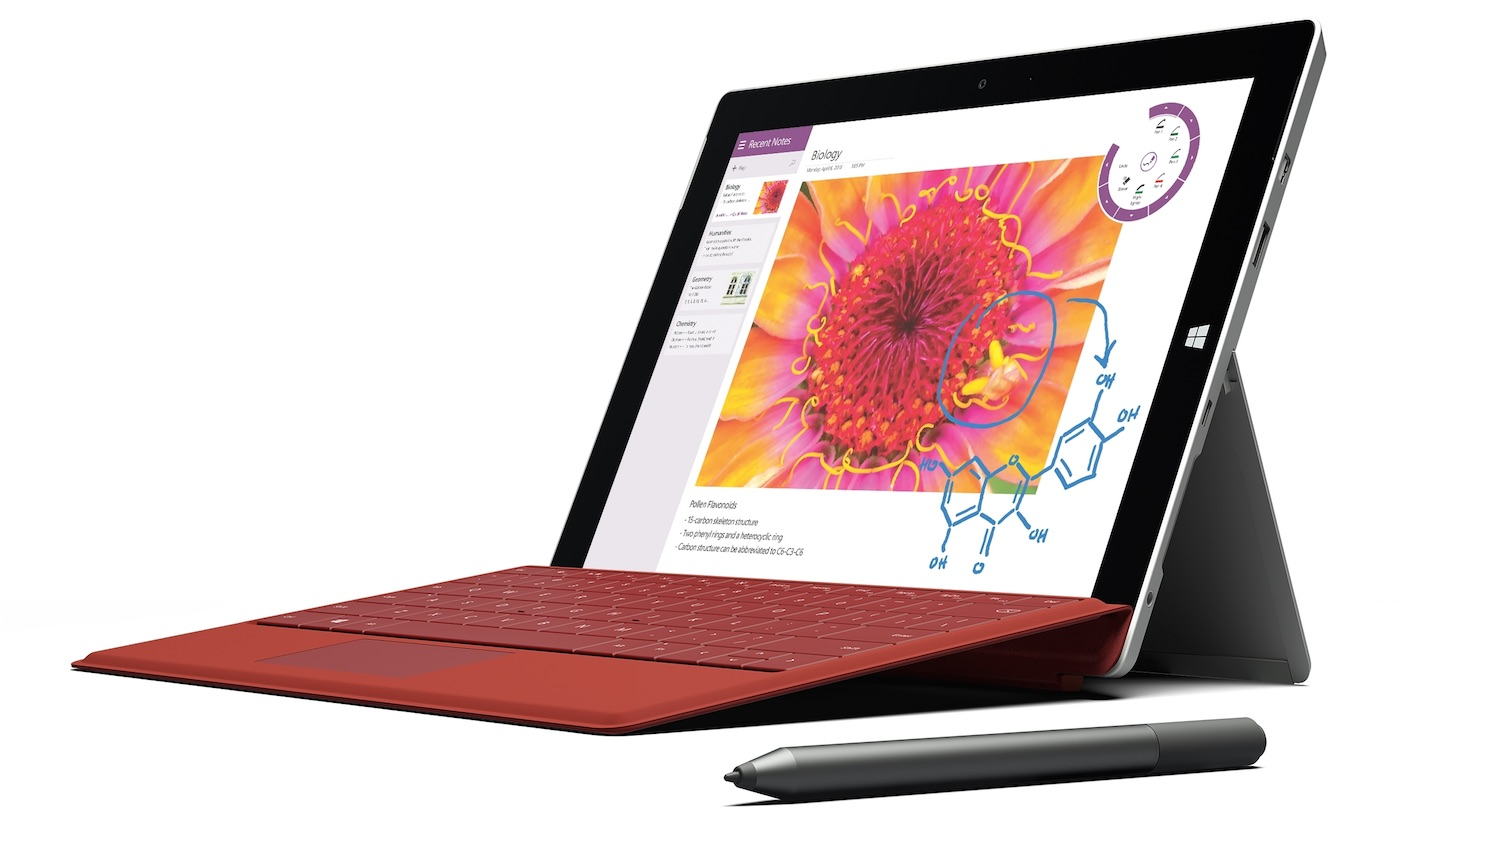 microsoft surface 3 lte kommt nach deutschland. Black Bedroom Furniture Sets. Home Design Ideas